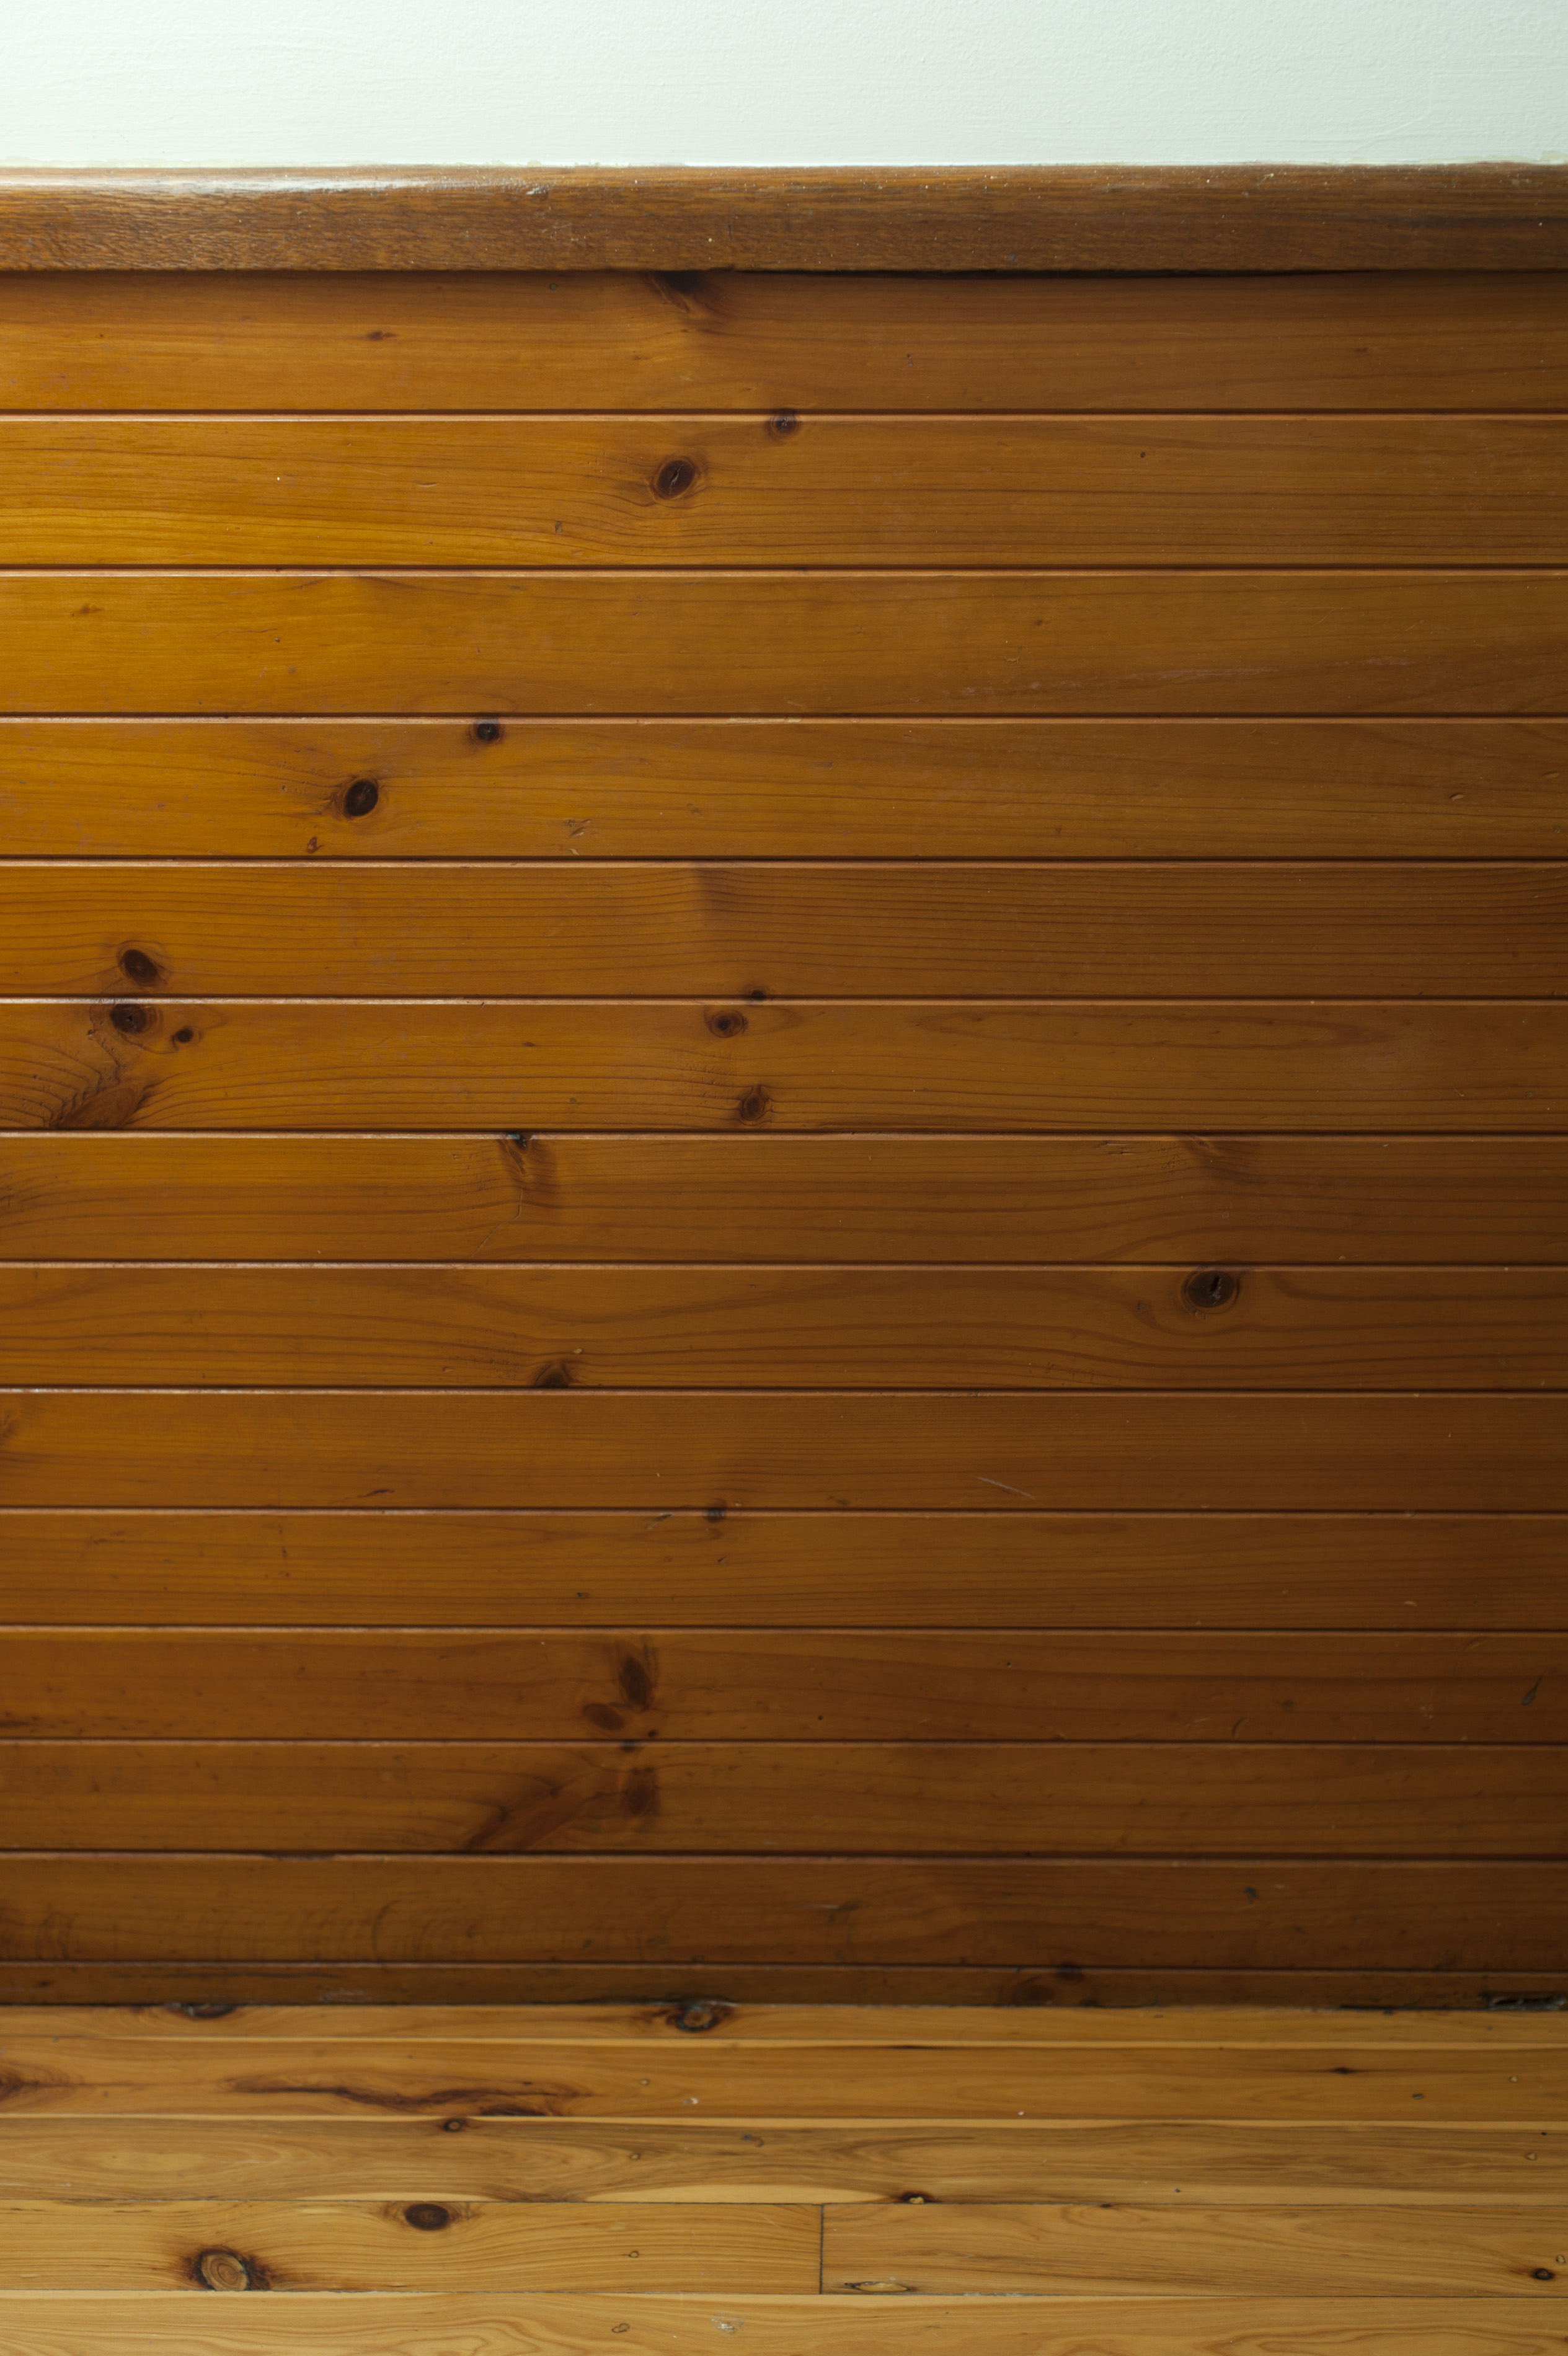 Wooden Dado Wall Protection Boarding Running Horizontal With A Chair Rail  Or Dado Rail On Top